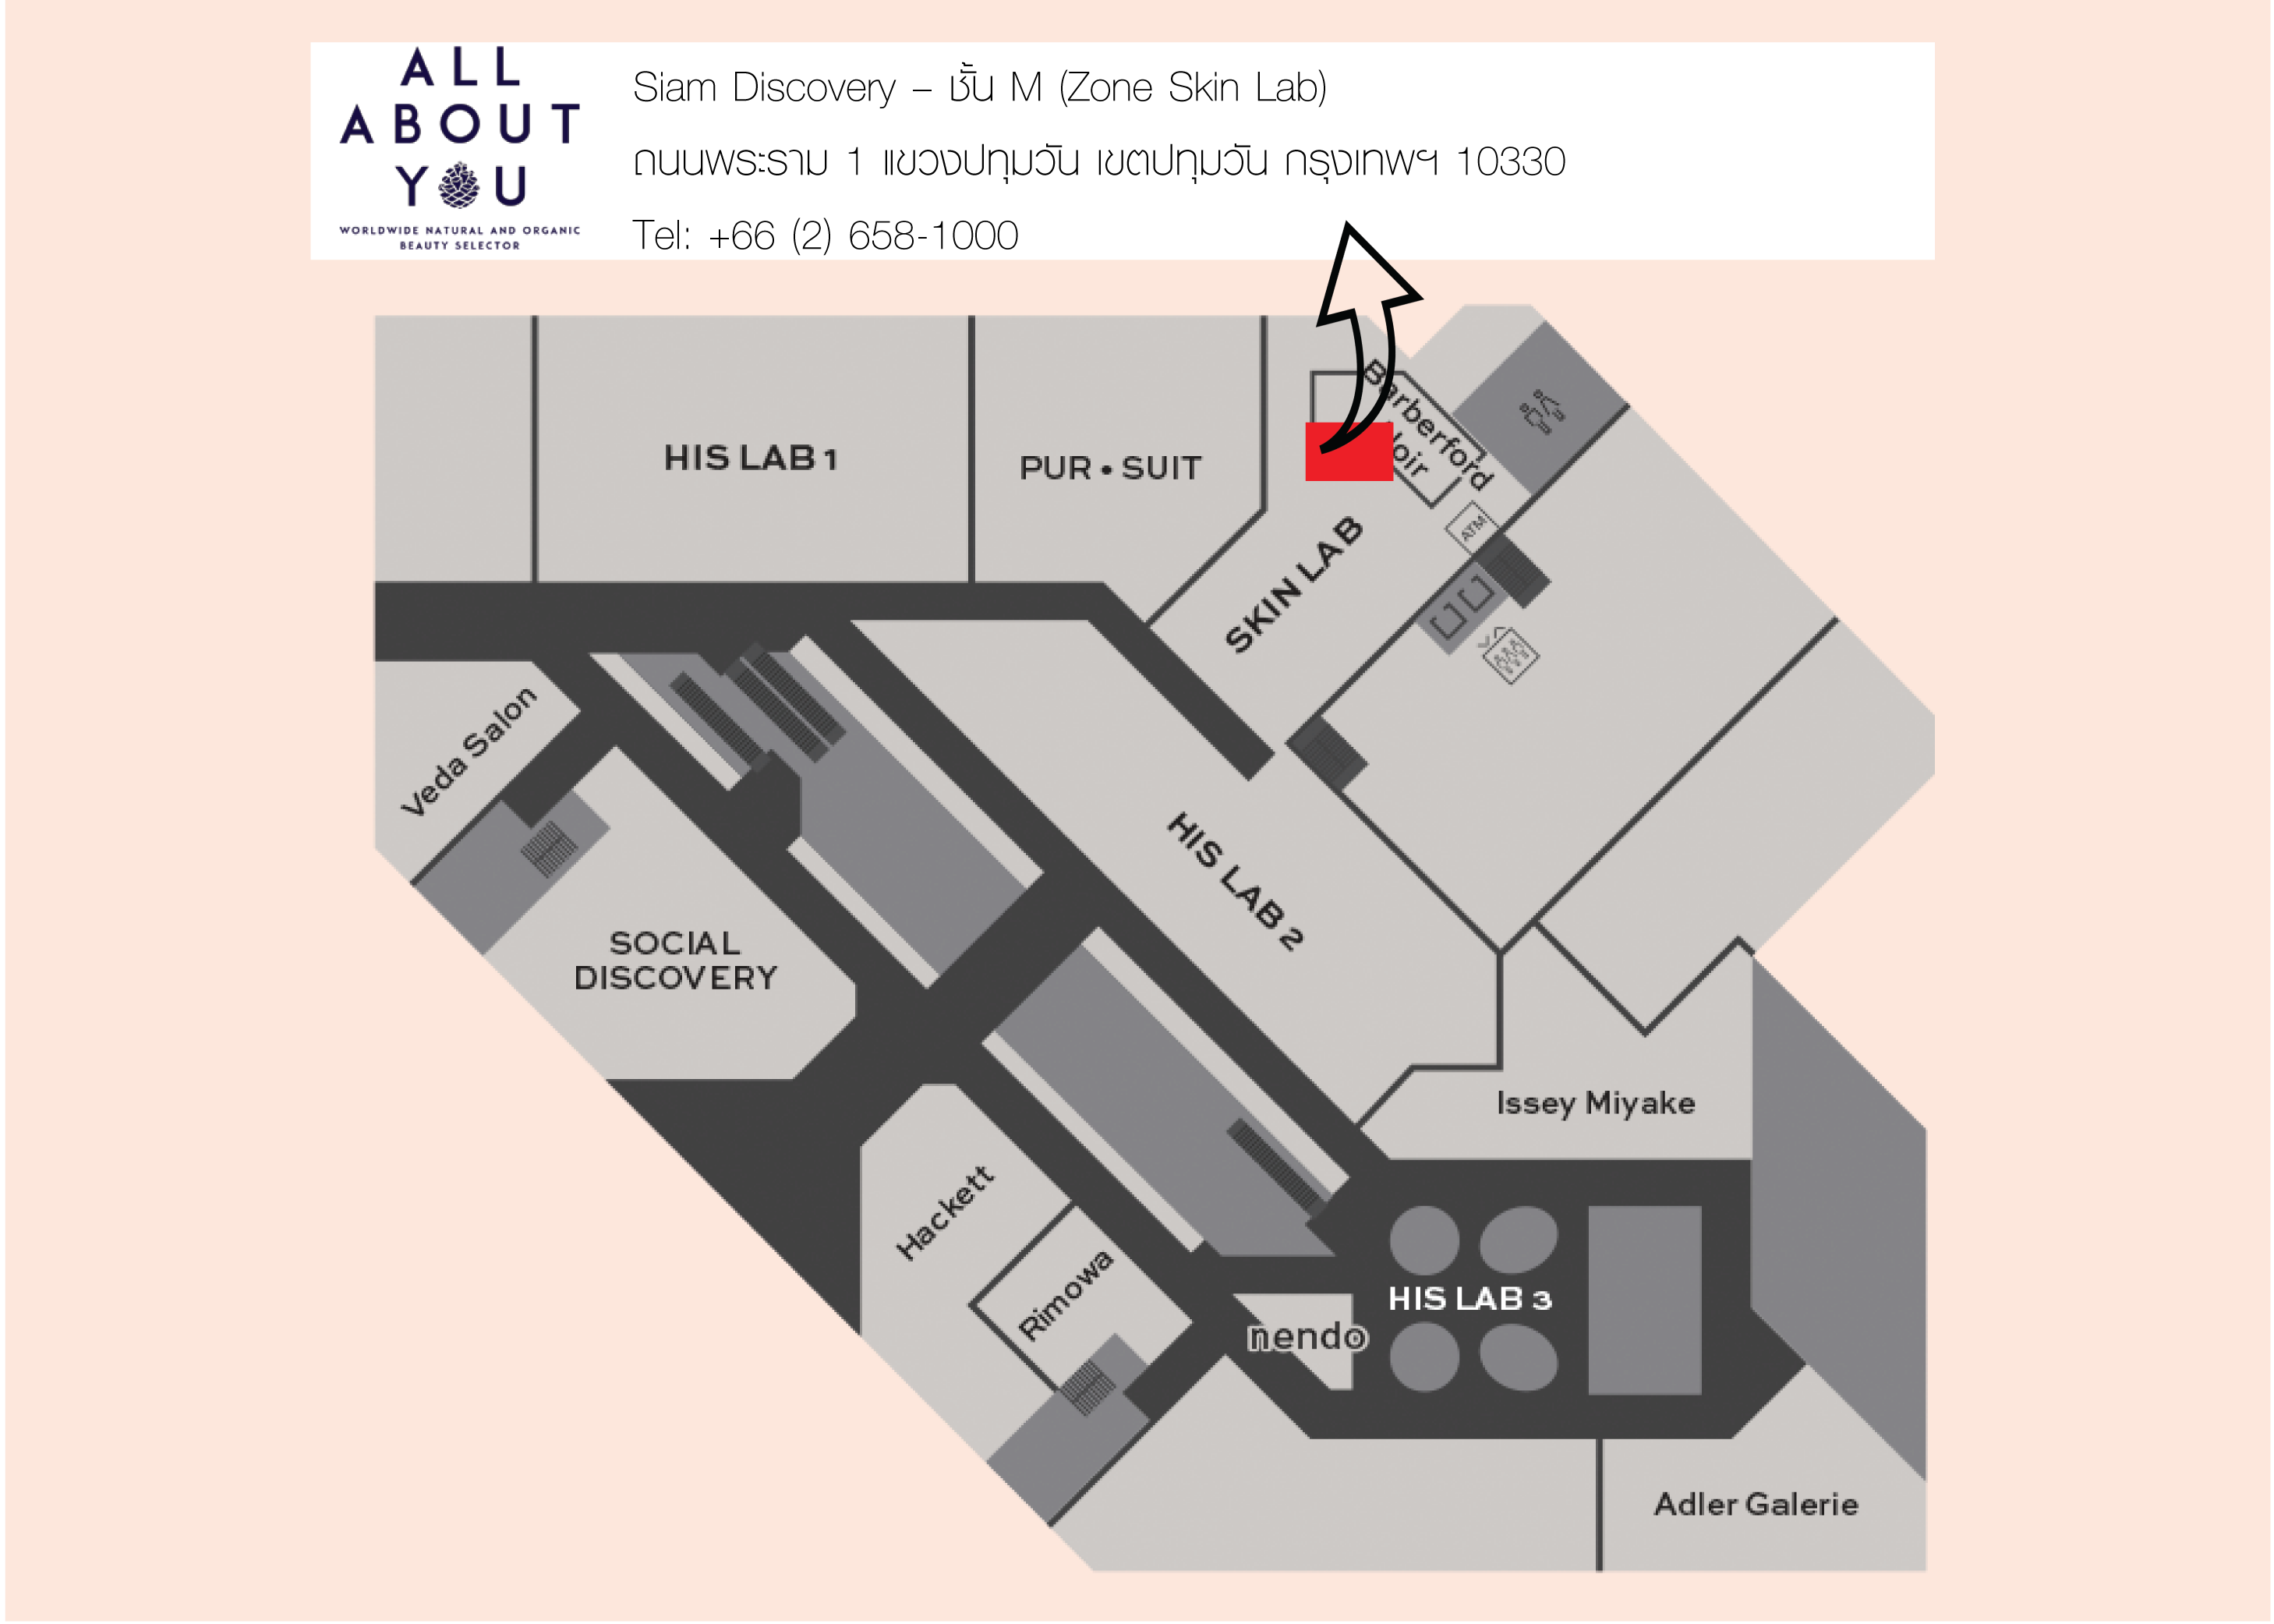 AAU-Siam Discovery